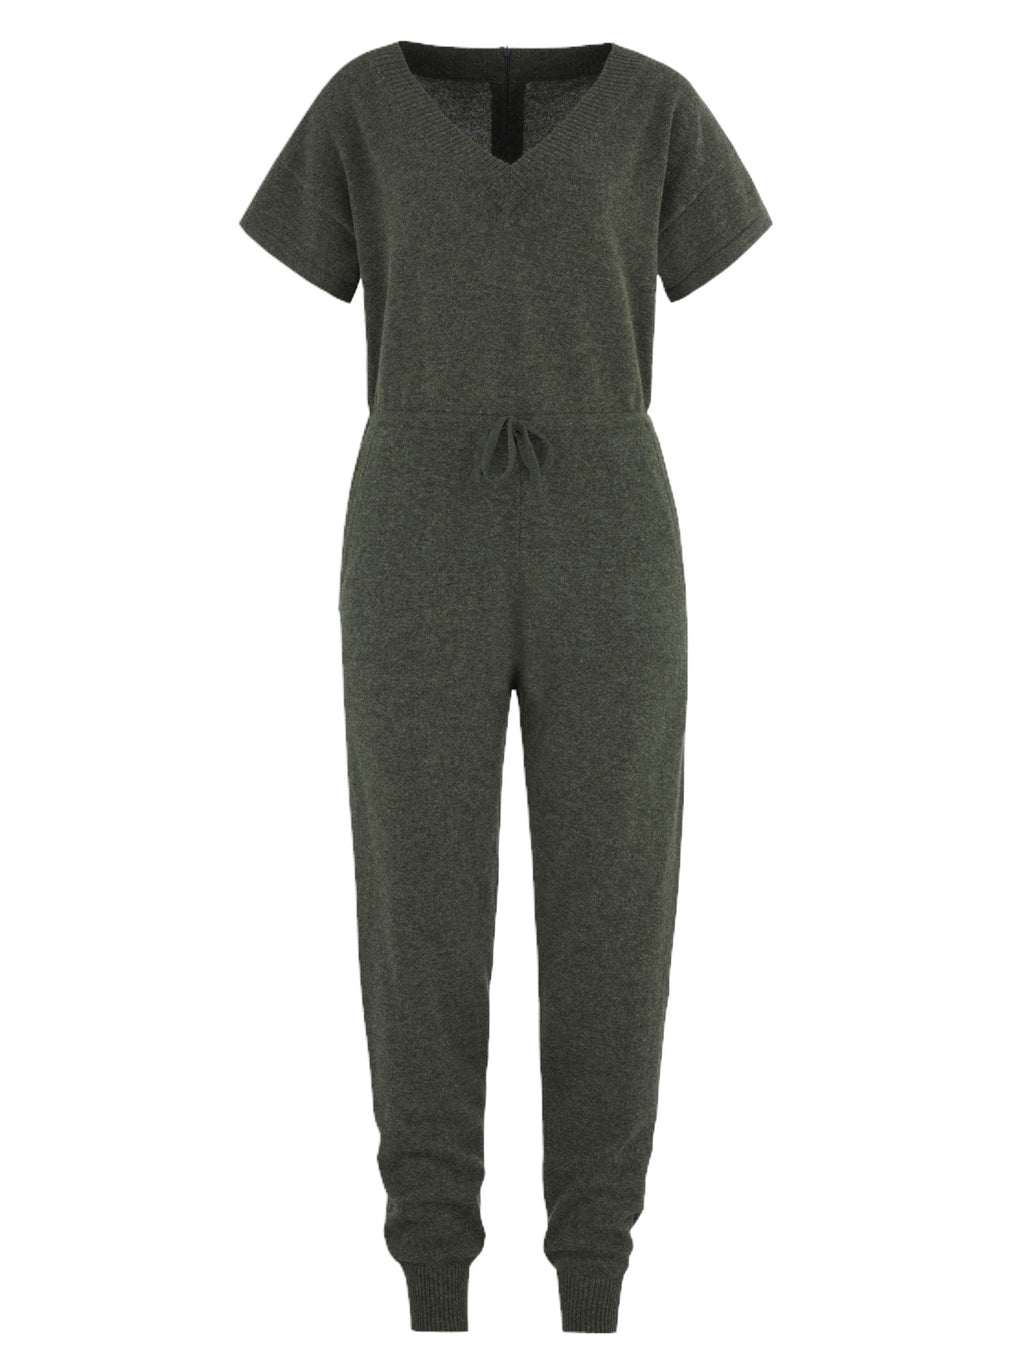 Cashmere jumpsuit in 100% cashmere by Kashmina